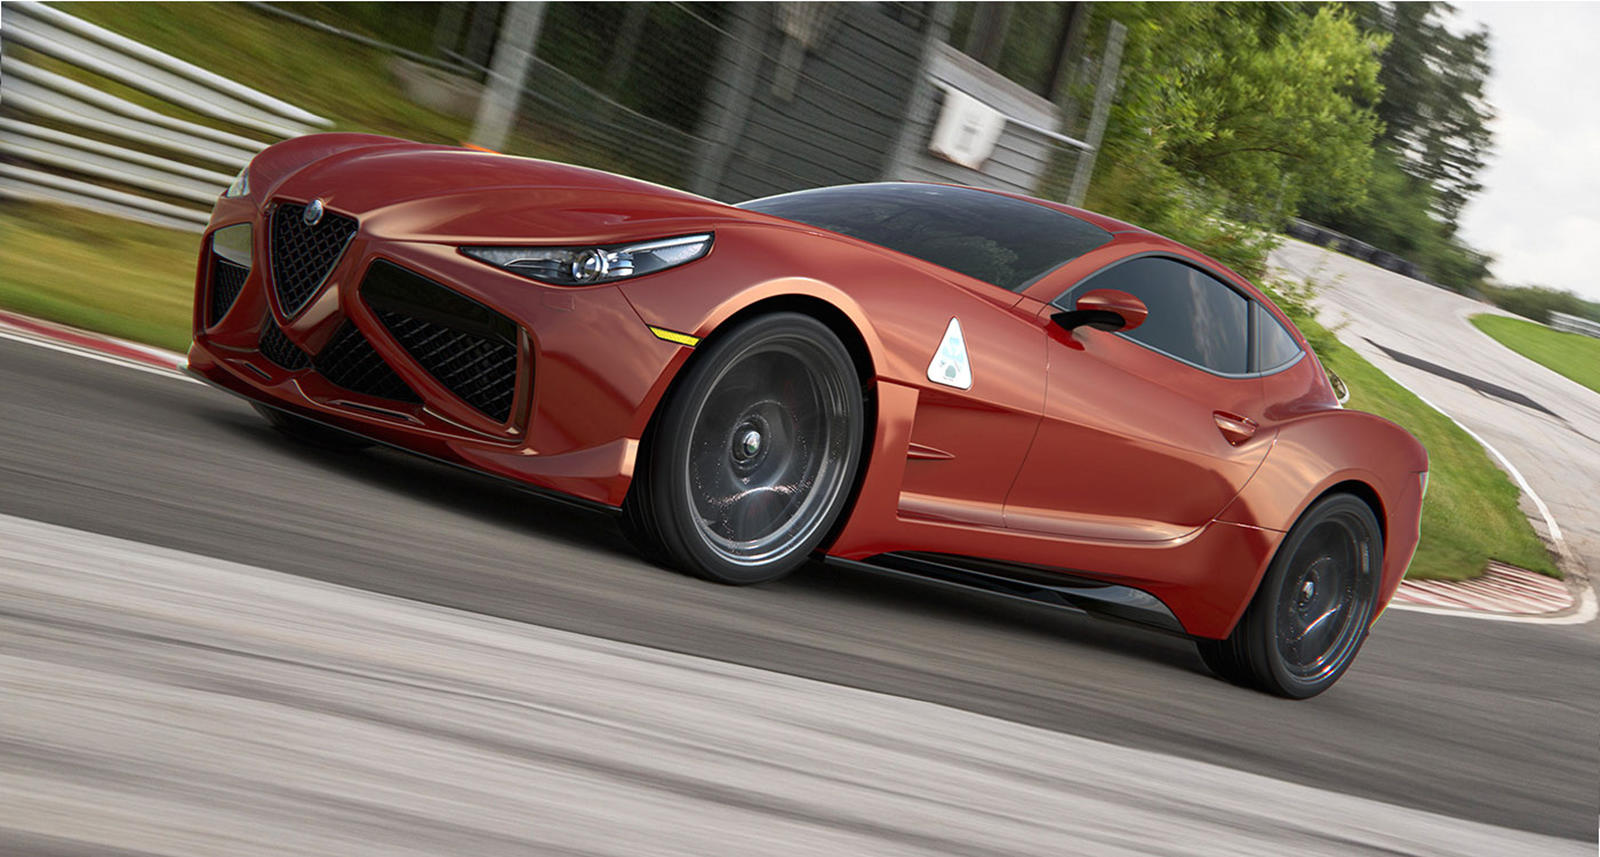 This Could Be Italy's Answer To The Toyota Supra